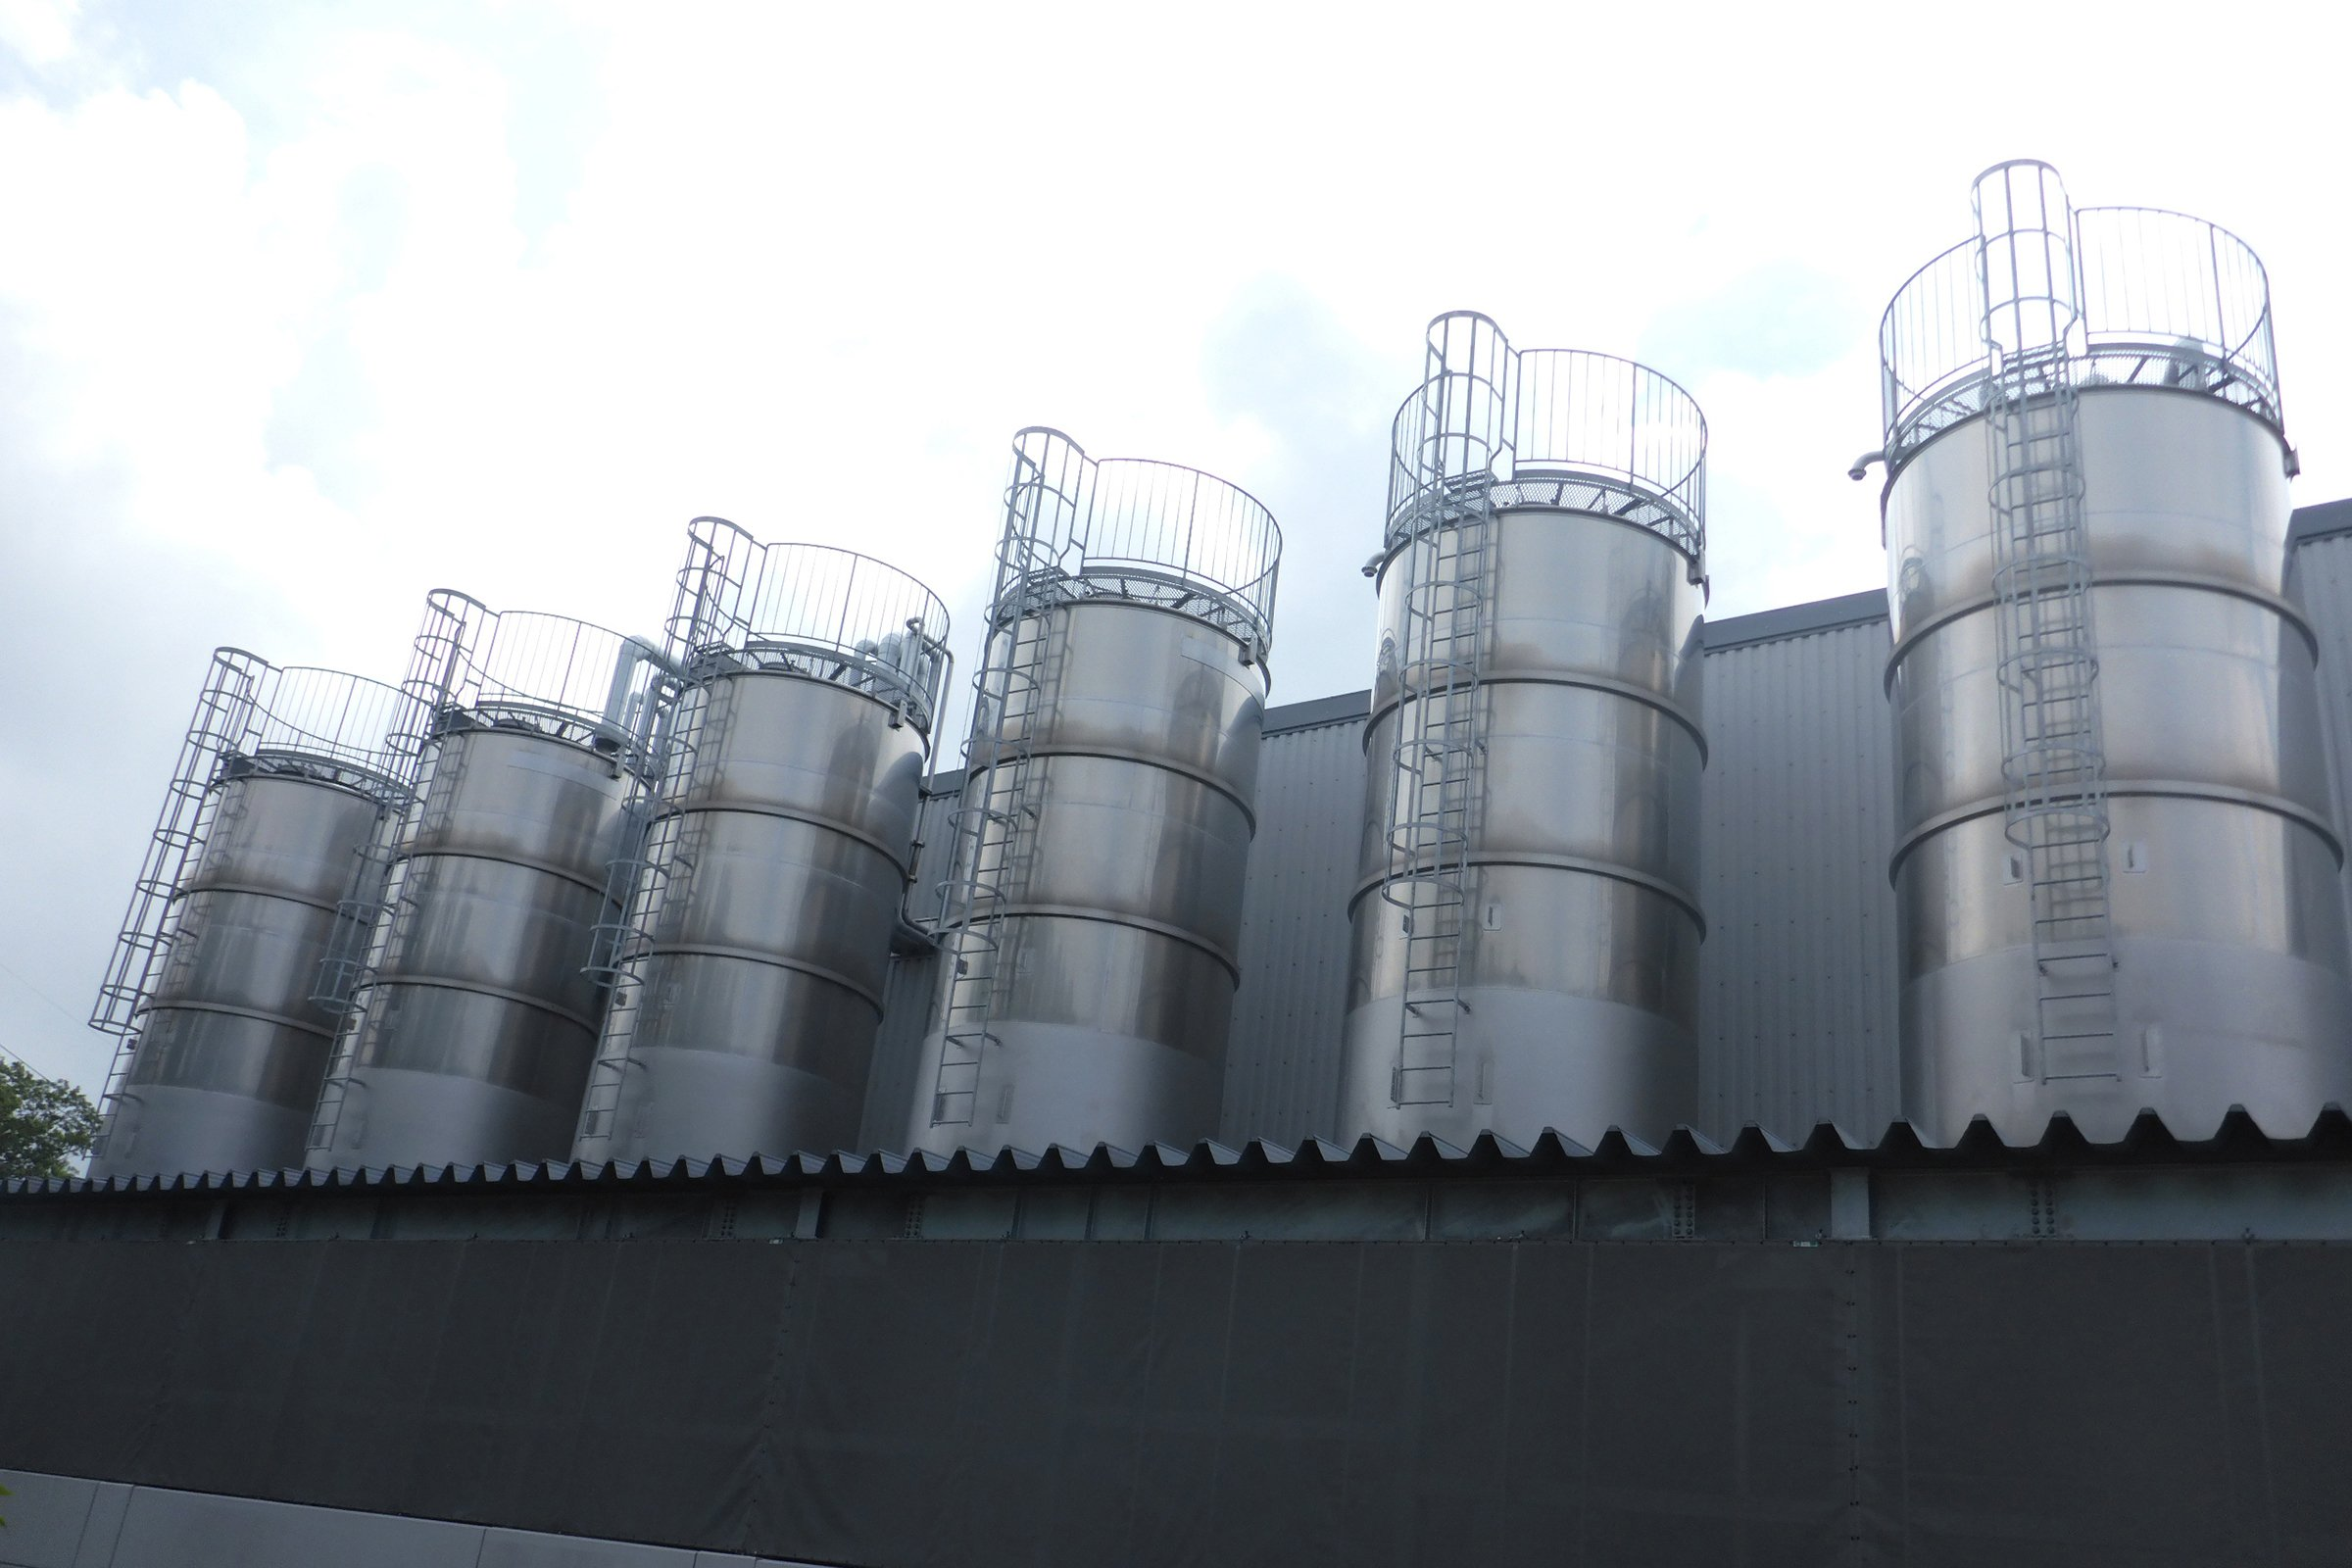 Photo: Six tanks for storing wastewater from the factory.